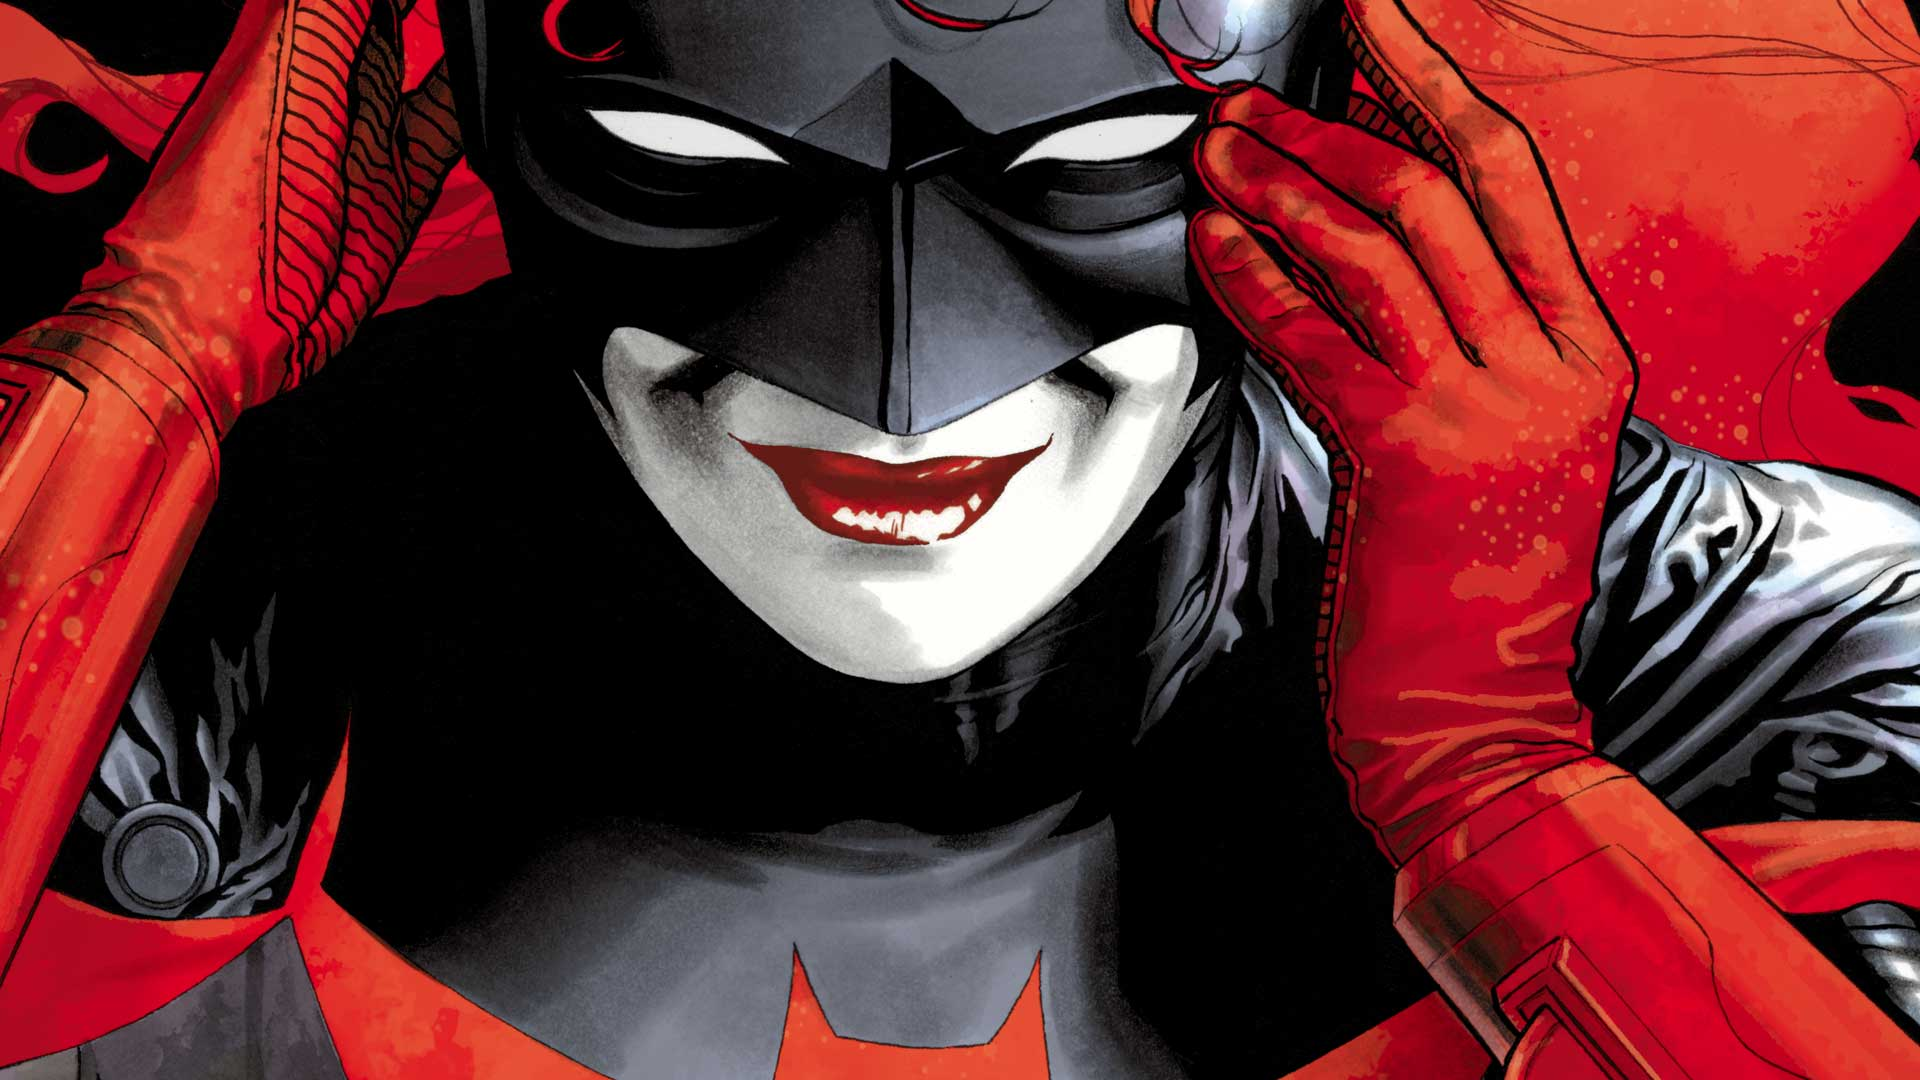 BATWOMAN (and GOTHAM) Coming to the CW-DCU